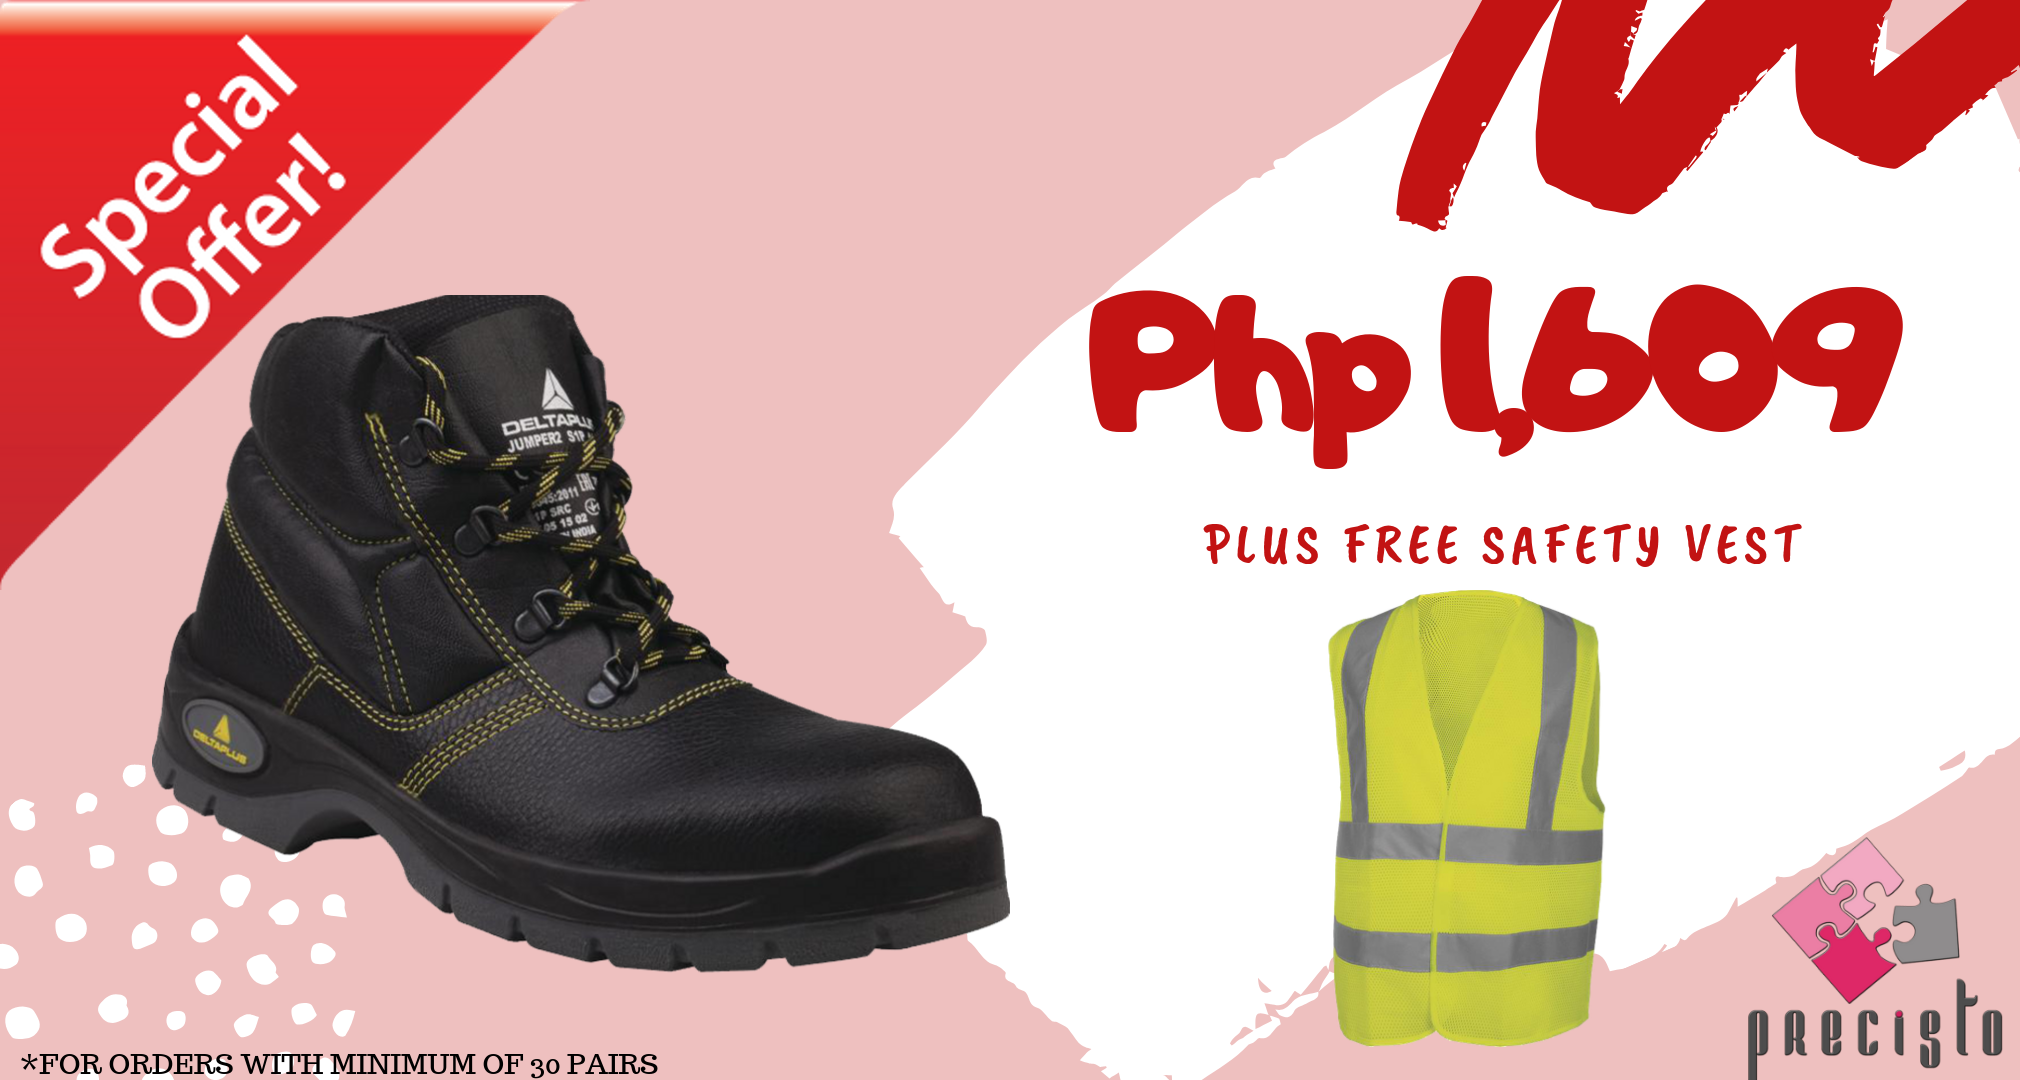 SAFETY SHOES WITH FREE VEST